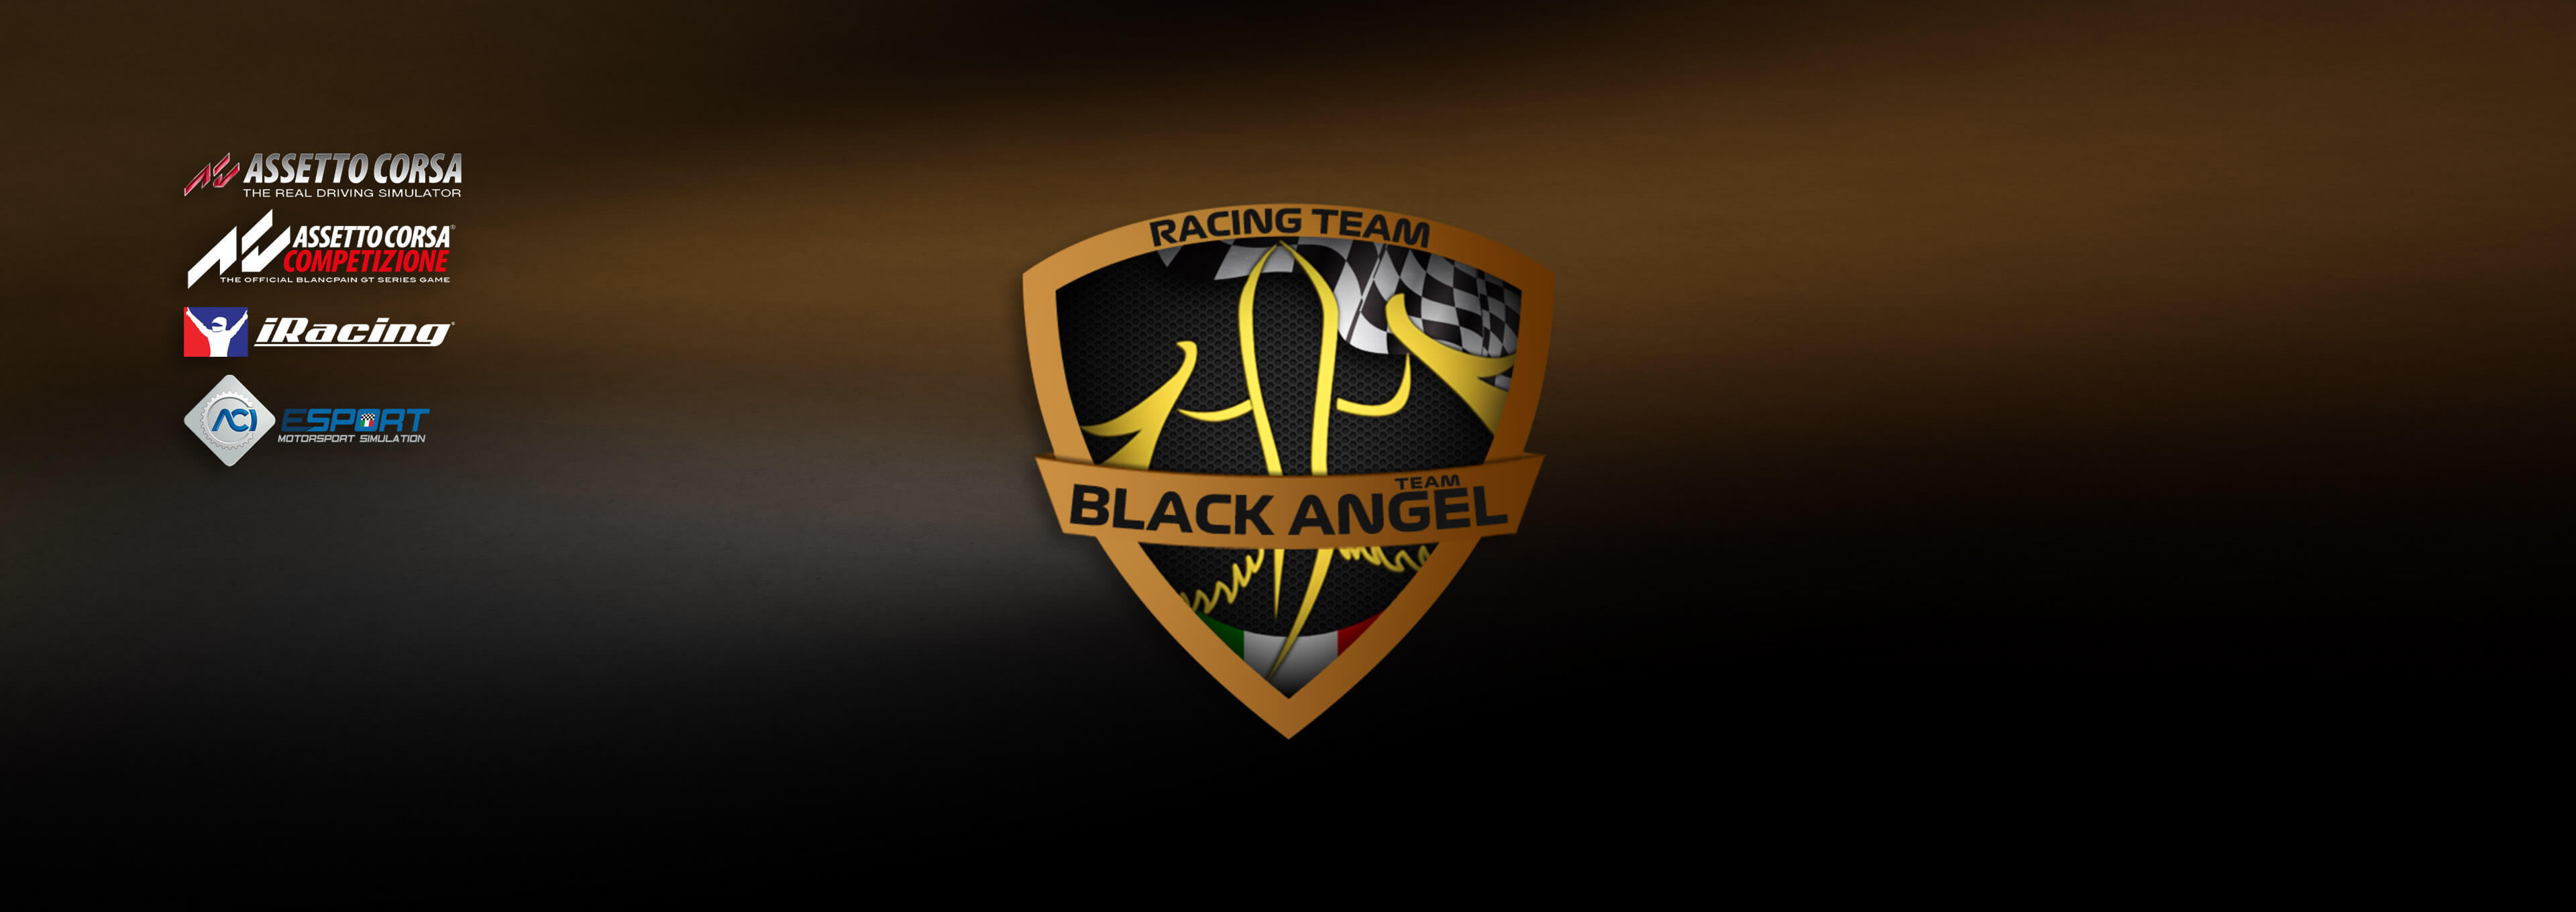 <span>Black Angel Team</span> {[de]}WILLKOMMEN{[en]}WELCOME{[it]}BENVENUTO